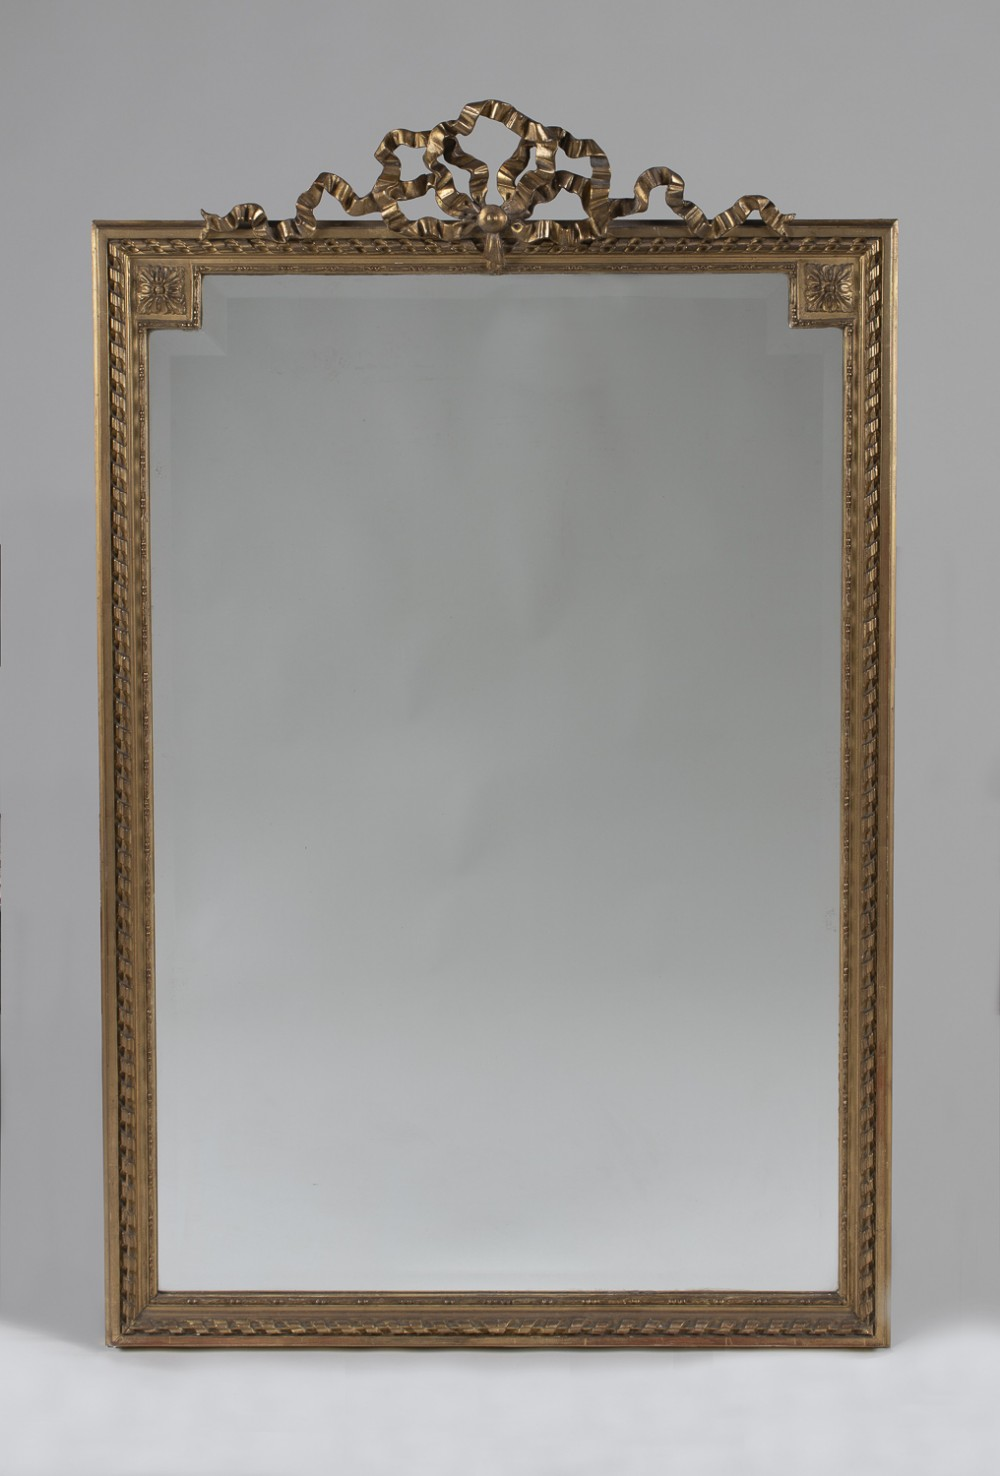 19th century large french gilt overmantle mirror